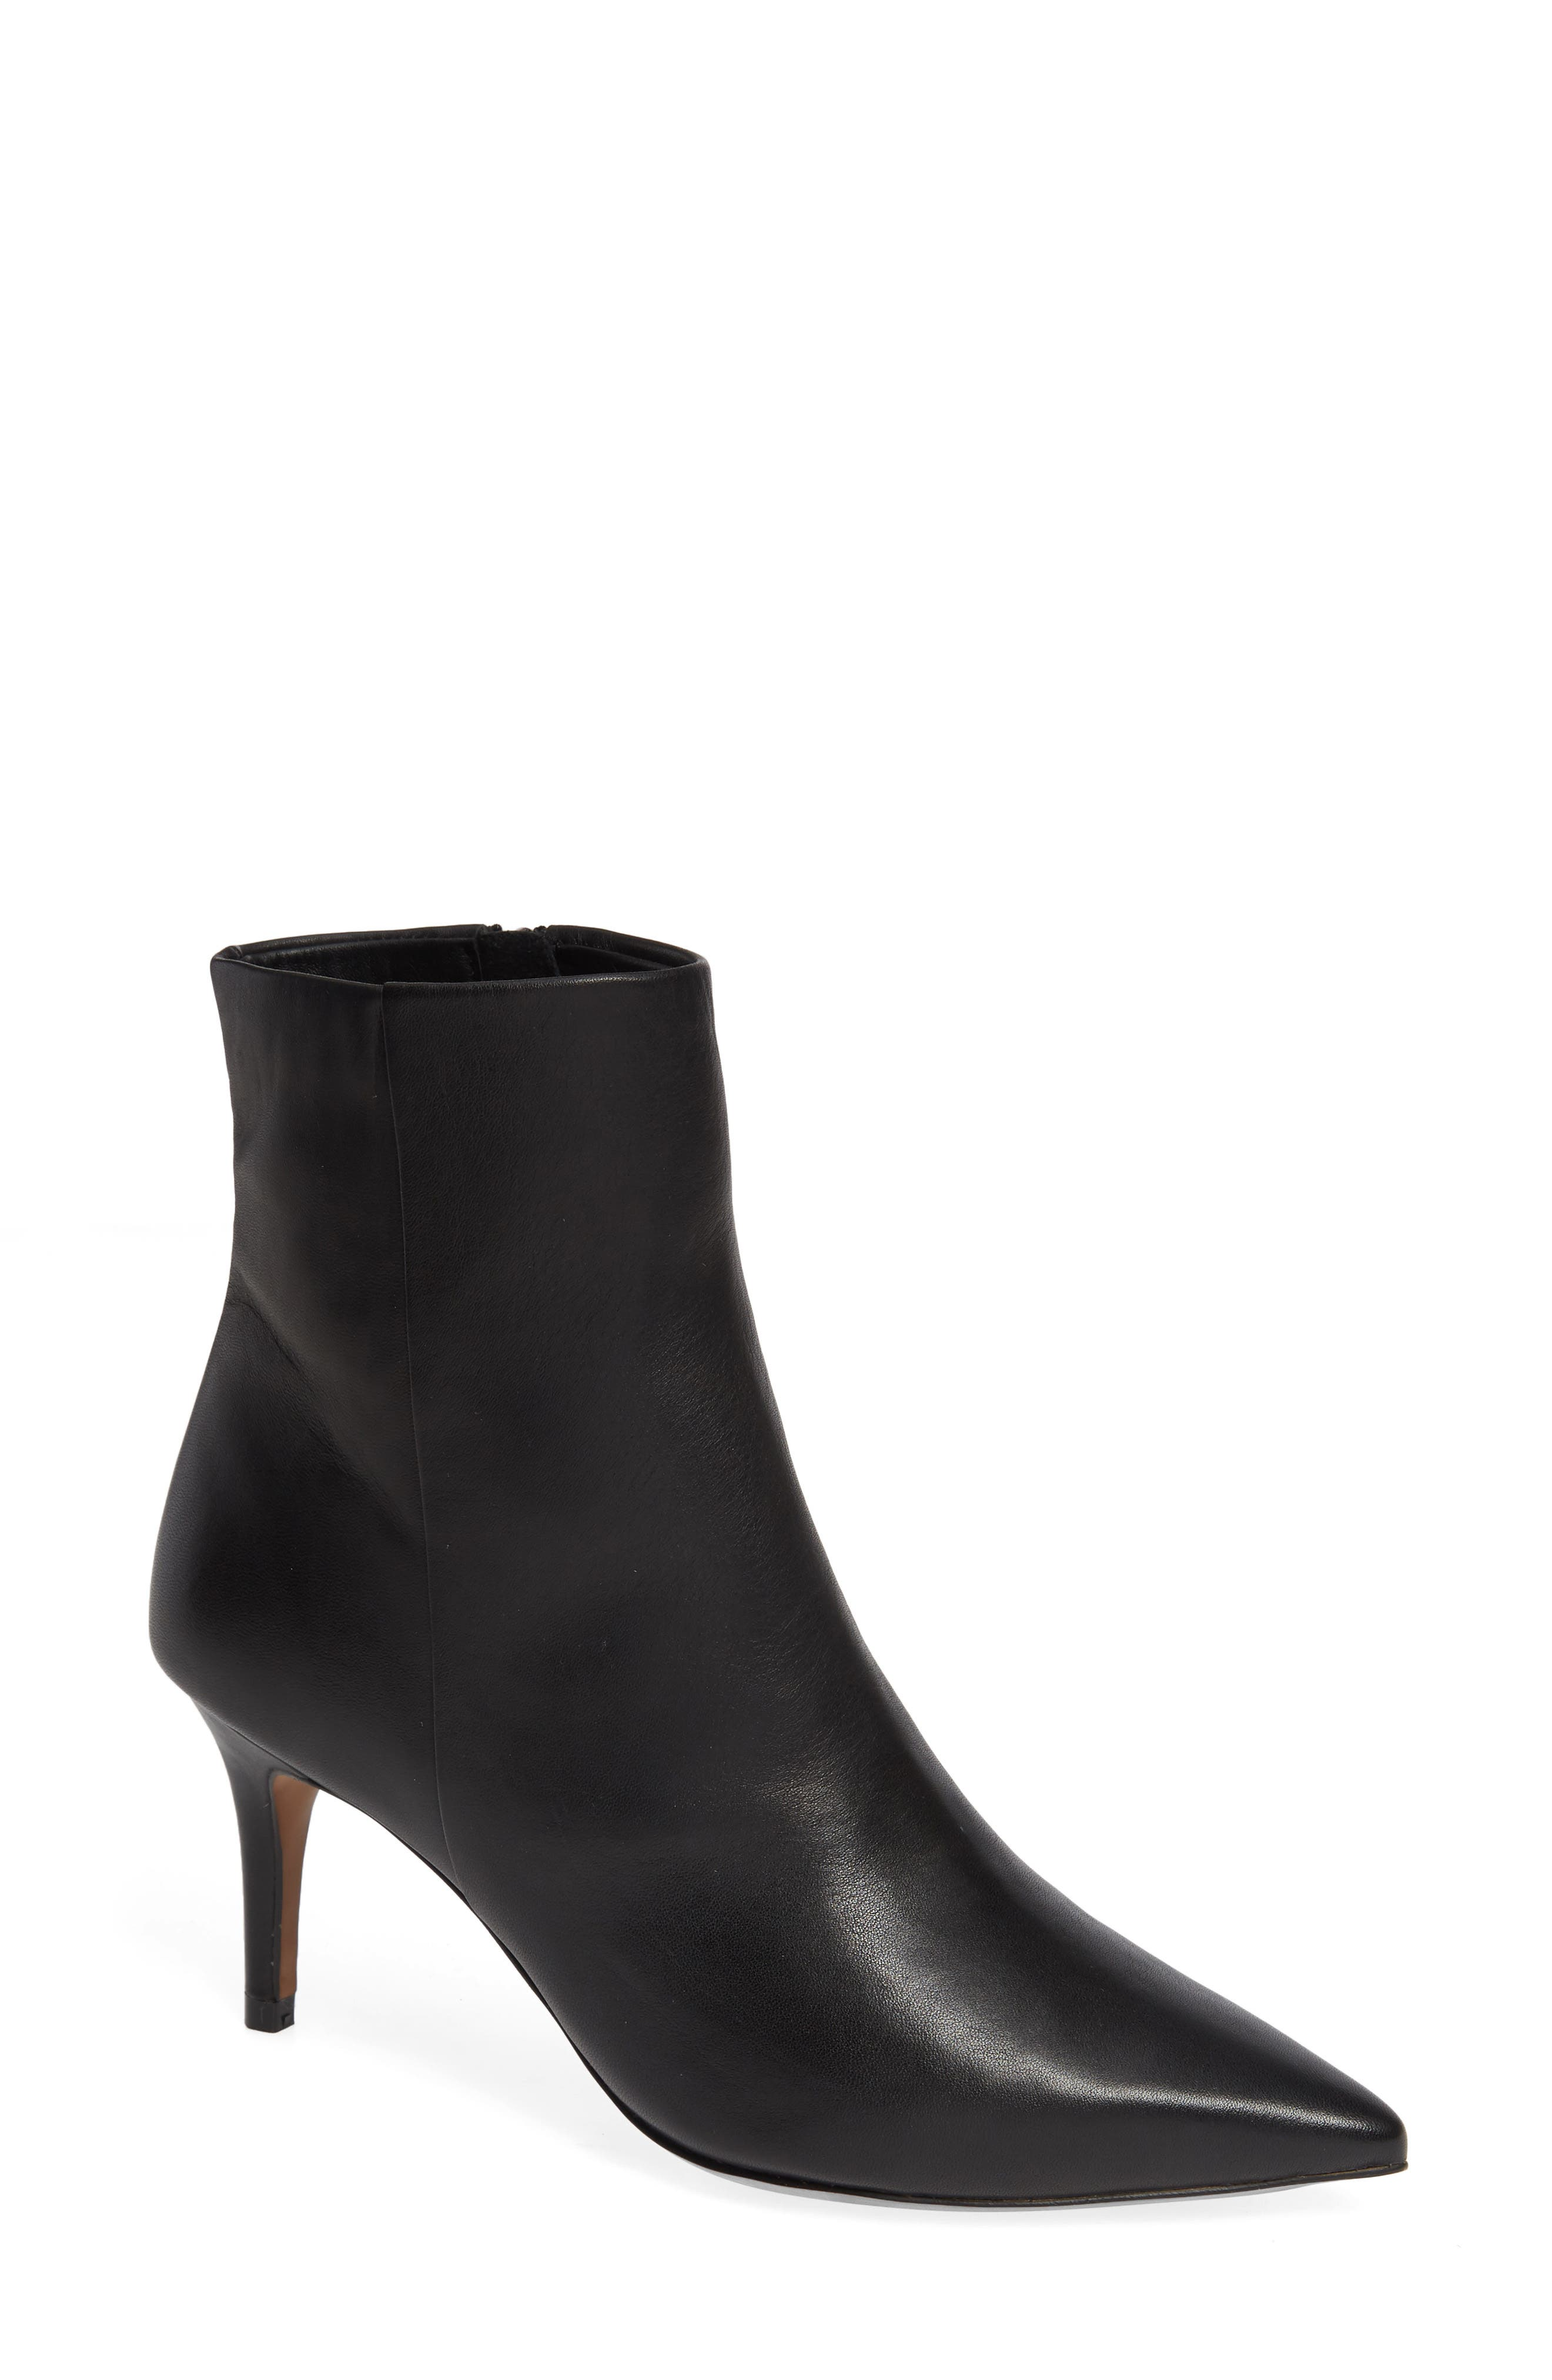 Nita Bootie,                             Main thumbnail 1, color,                             BLACK LEATHER